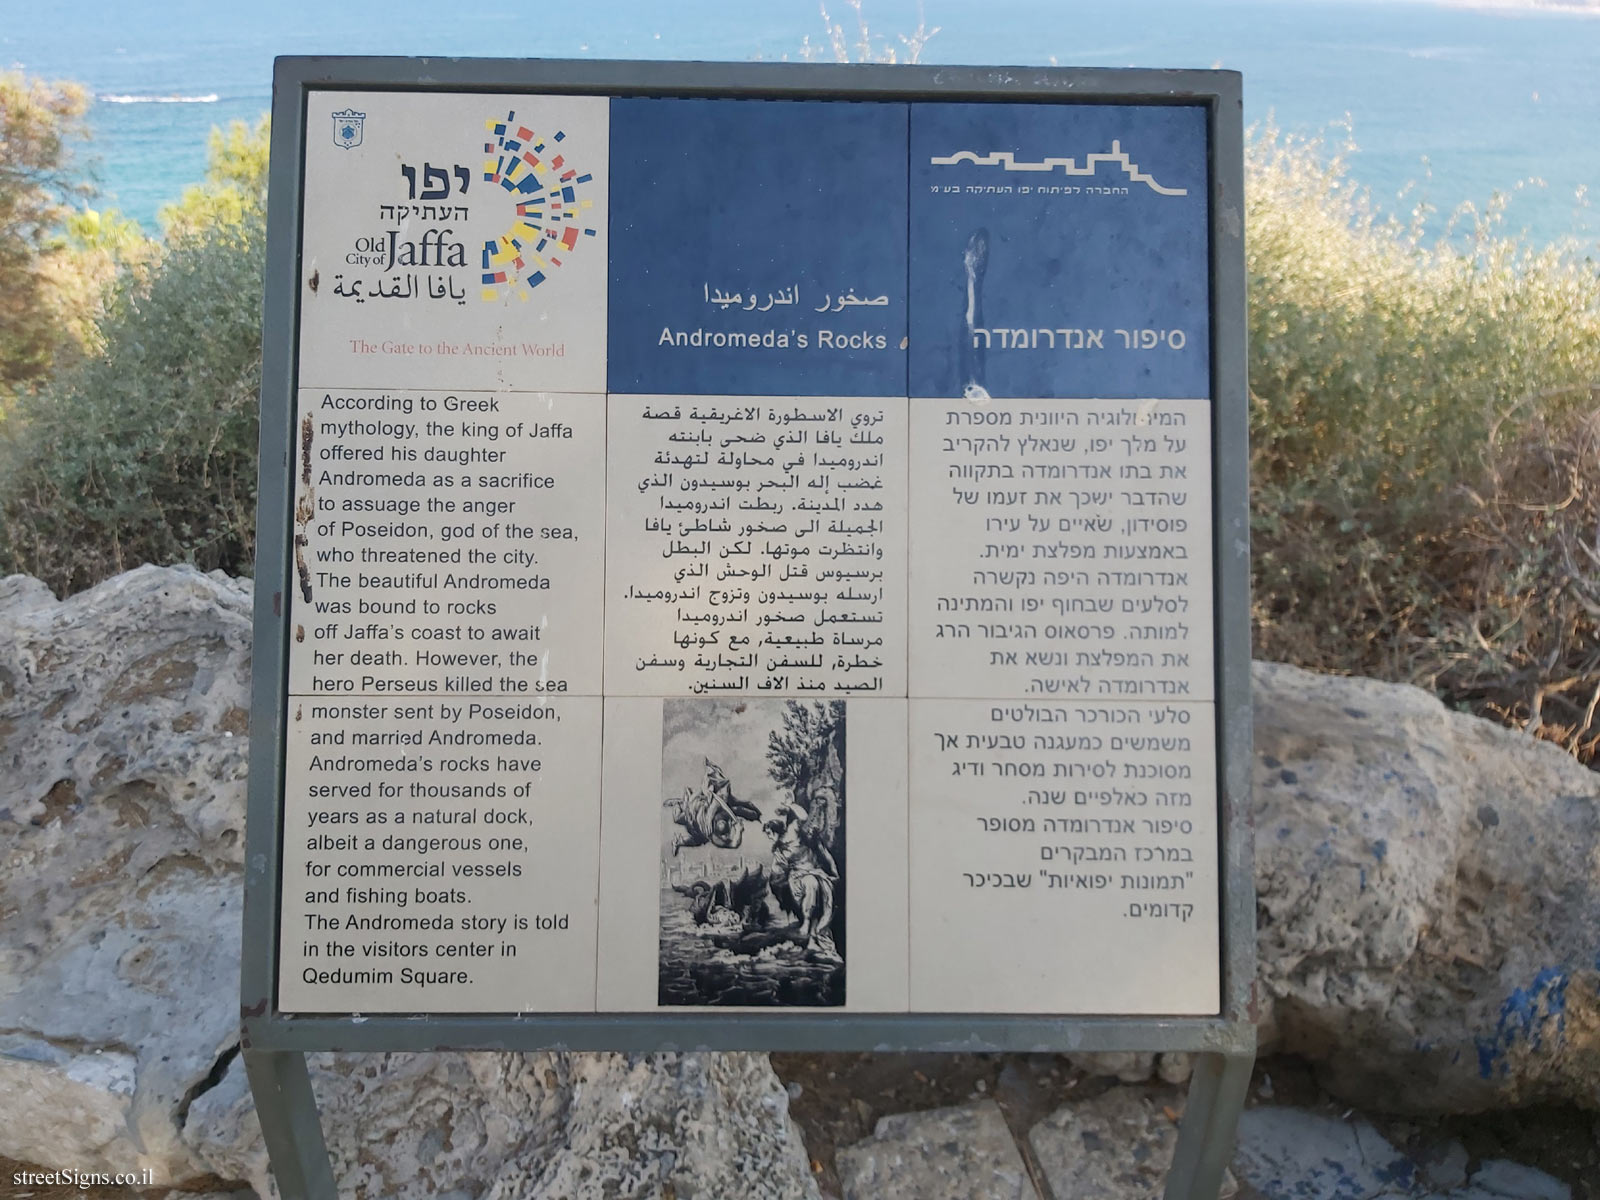 Old Jaffa - Andromeda's Rocks